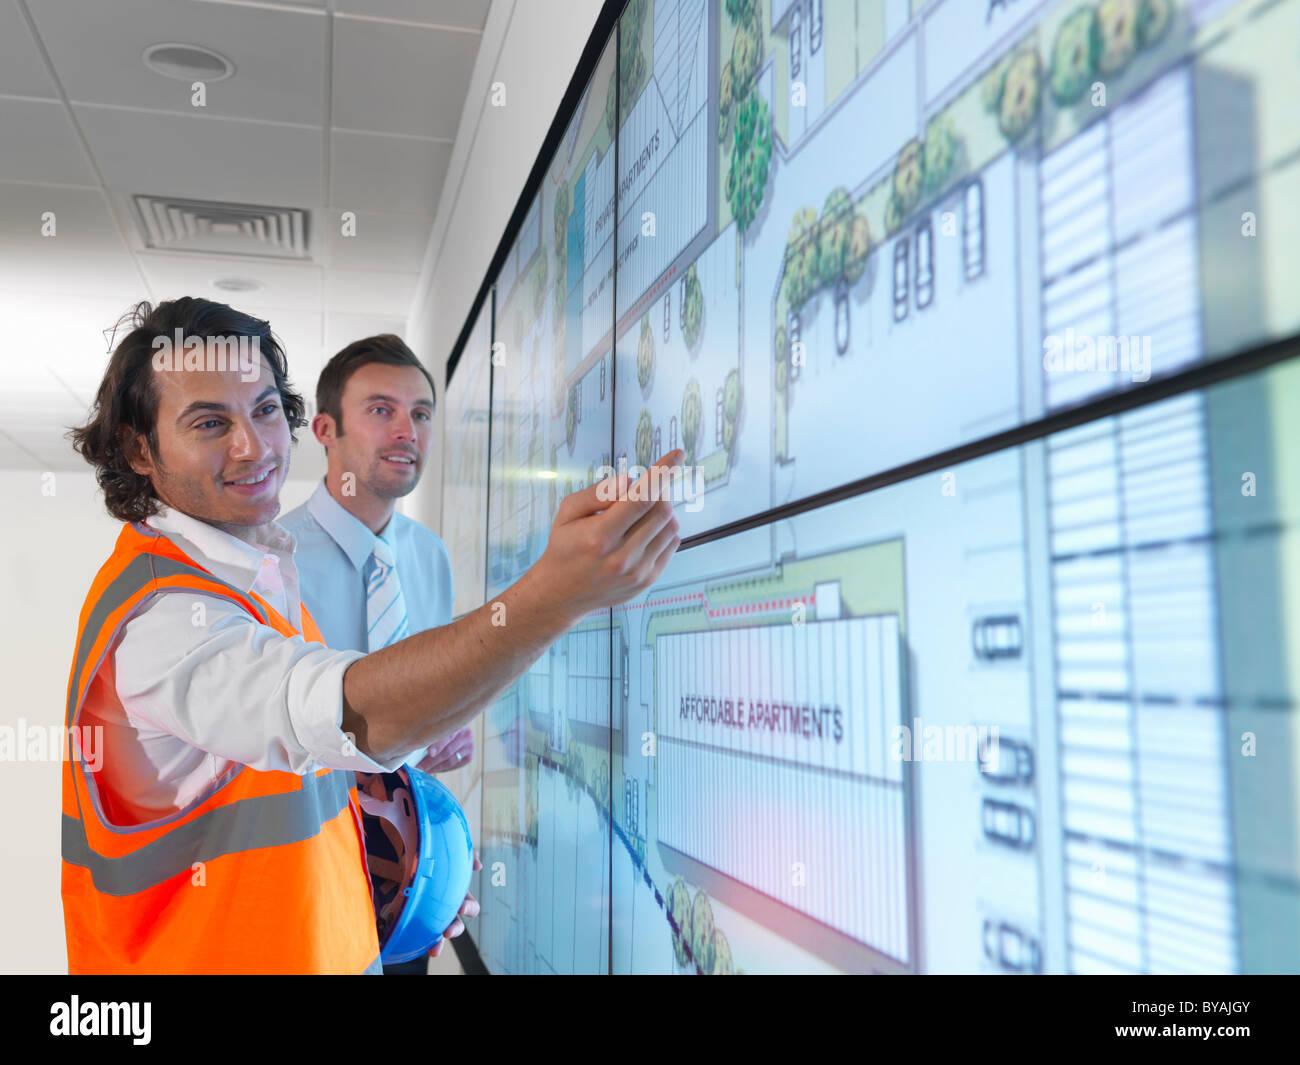 Architects work with plans on screen - Stock Image